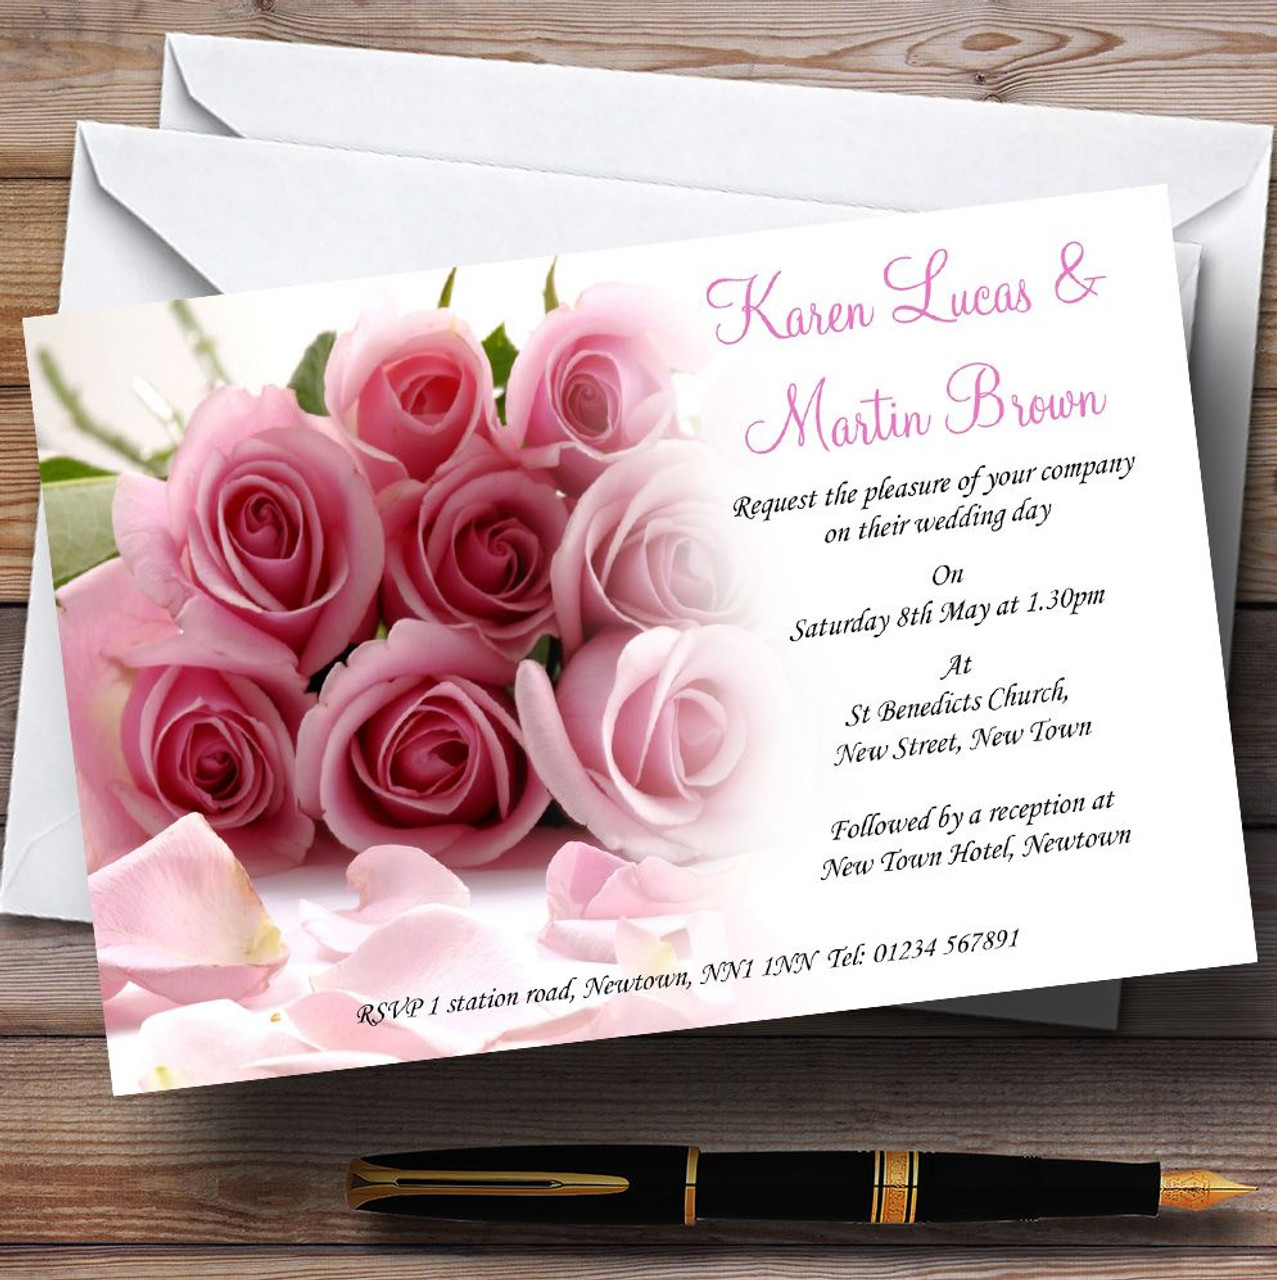 Personalized Wedding Invitations.Baby Pink Roses Personalized Wedding Invitations